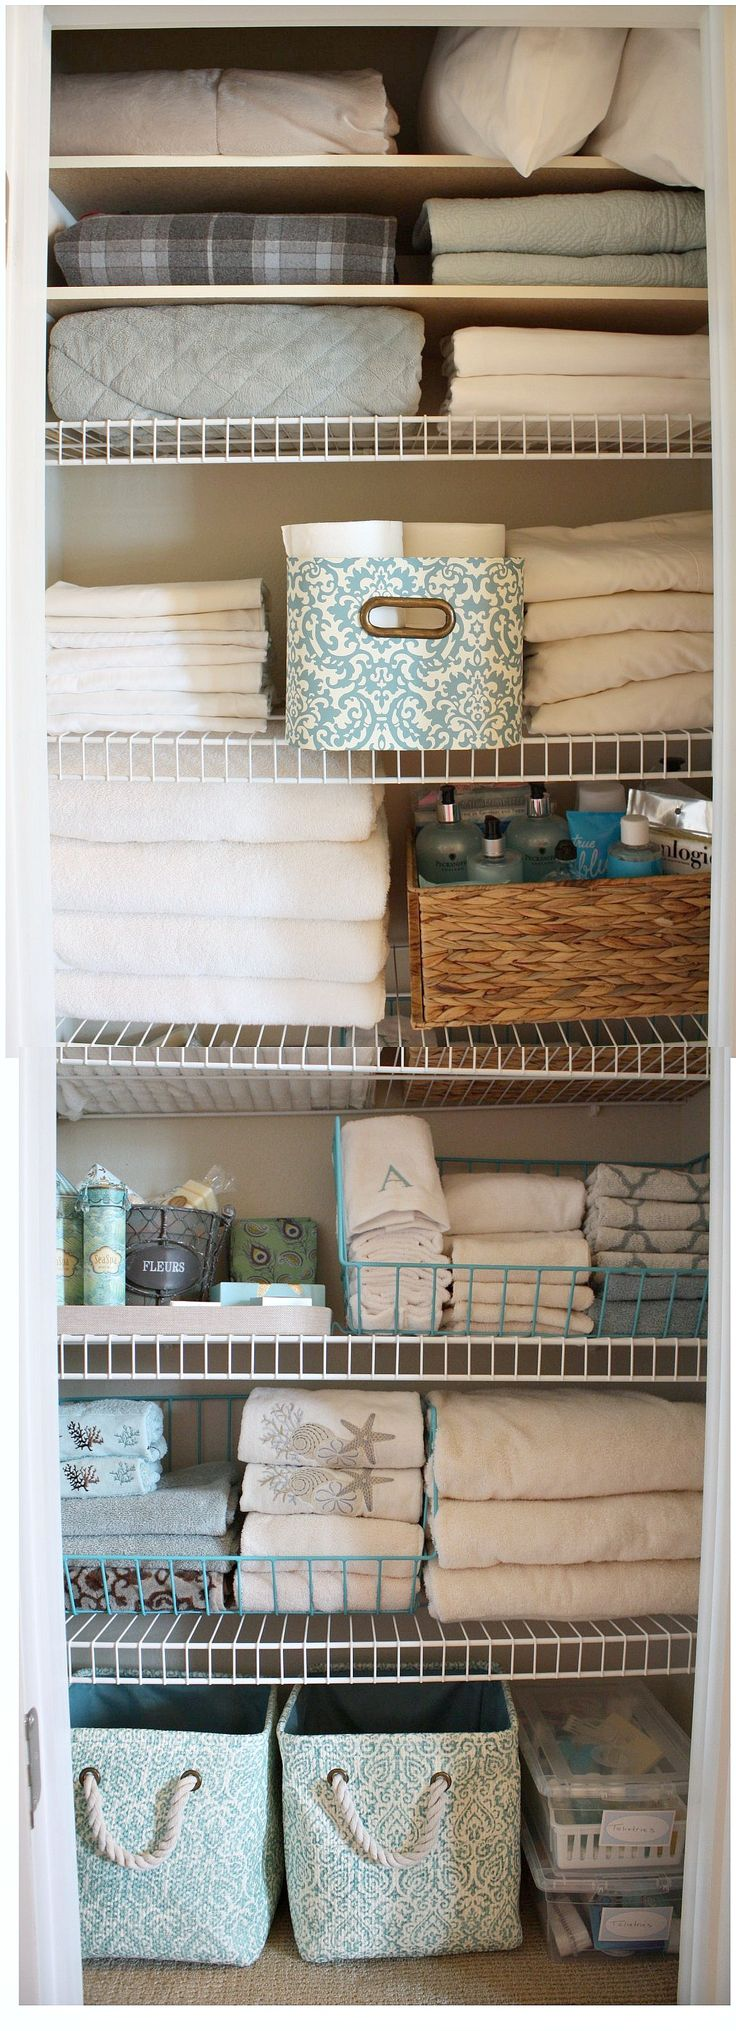 linen closet revamp with @Kirkland's Home Décor & Gifts pretty storage pieces.  The Creativity Exchange #loveyourlook